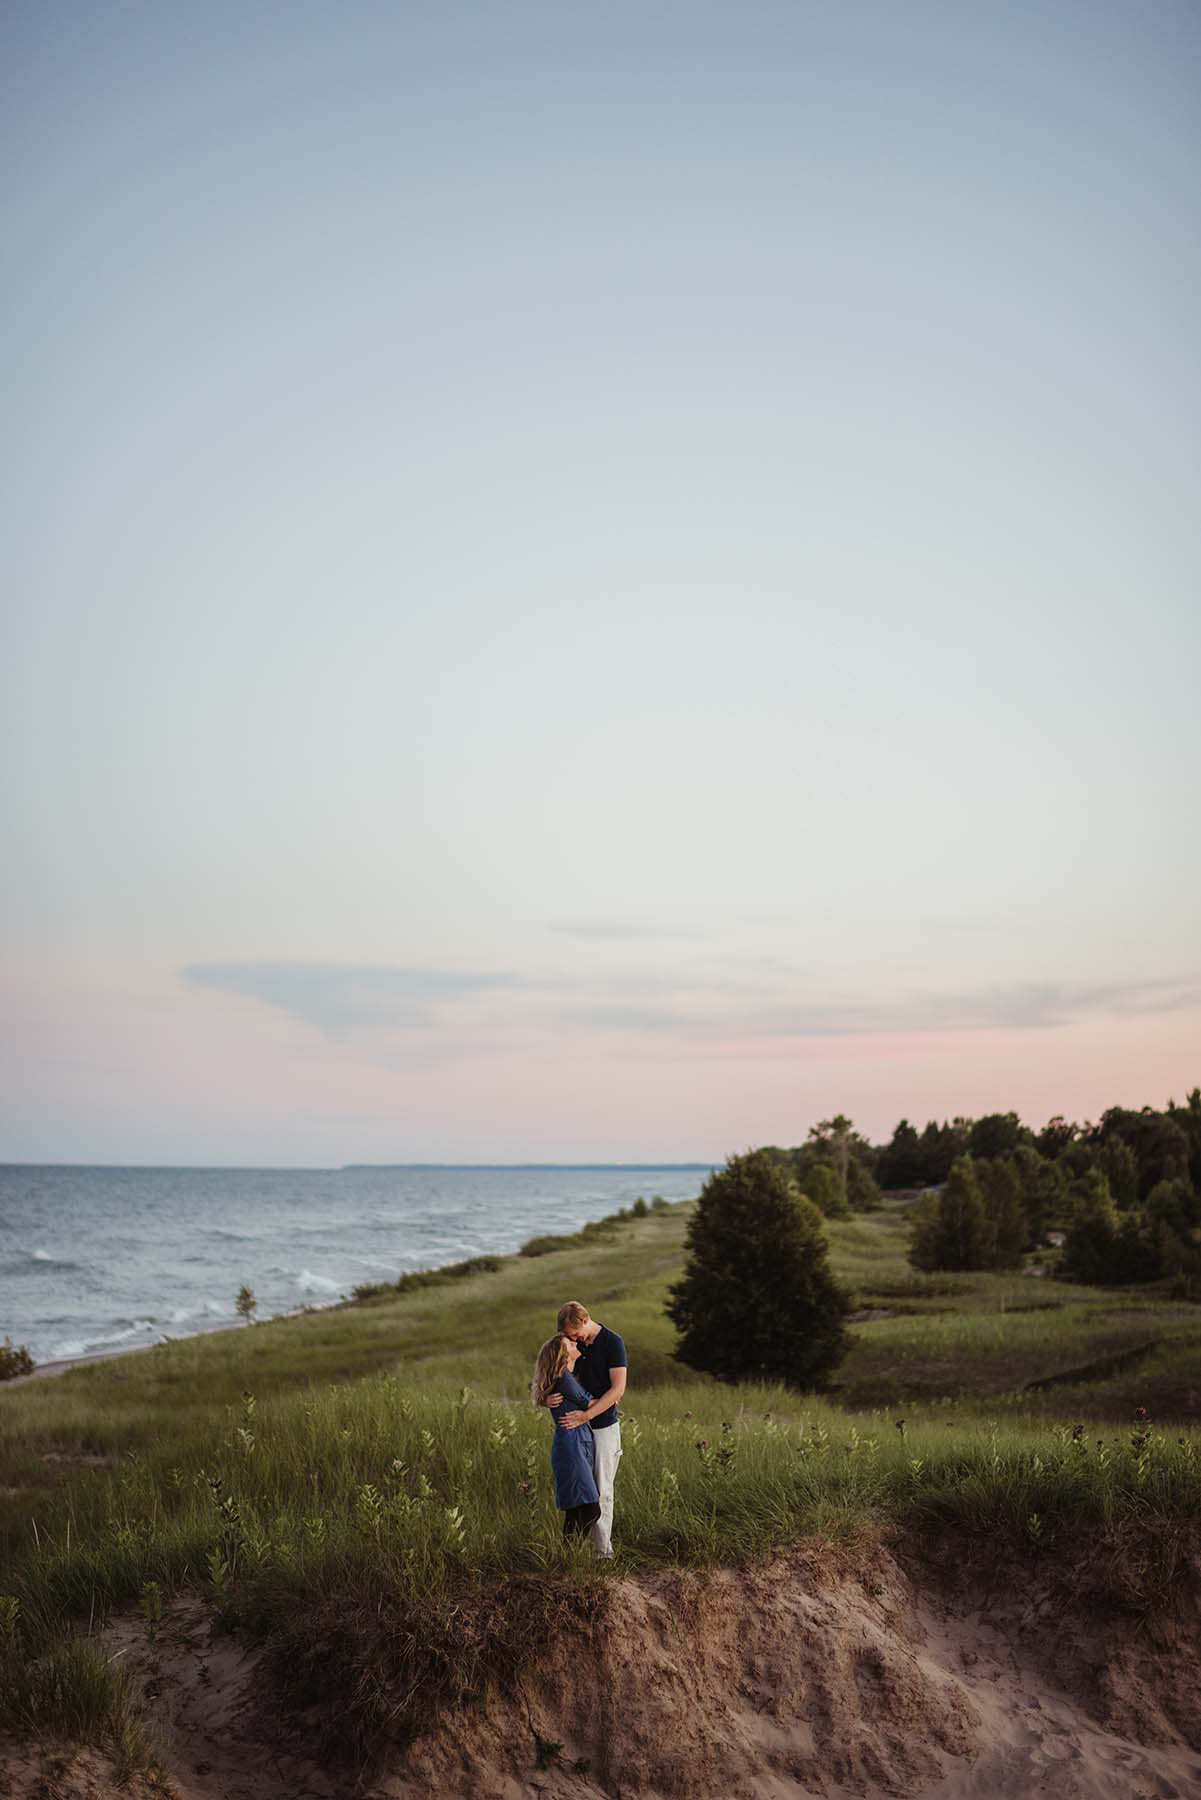 couple near a hilly shore